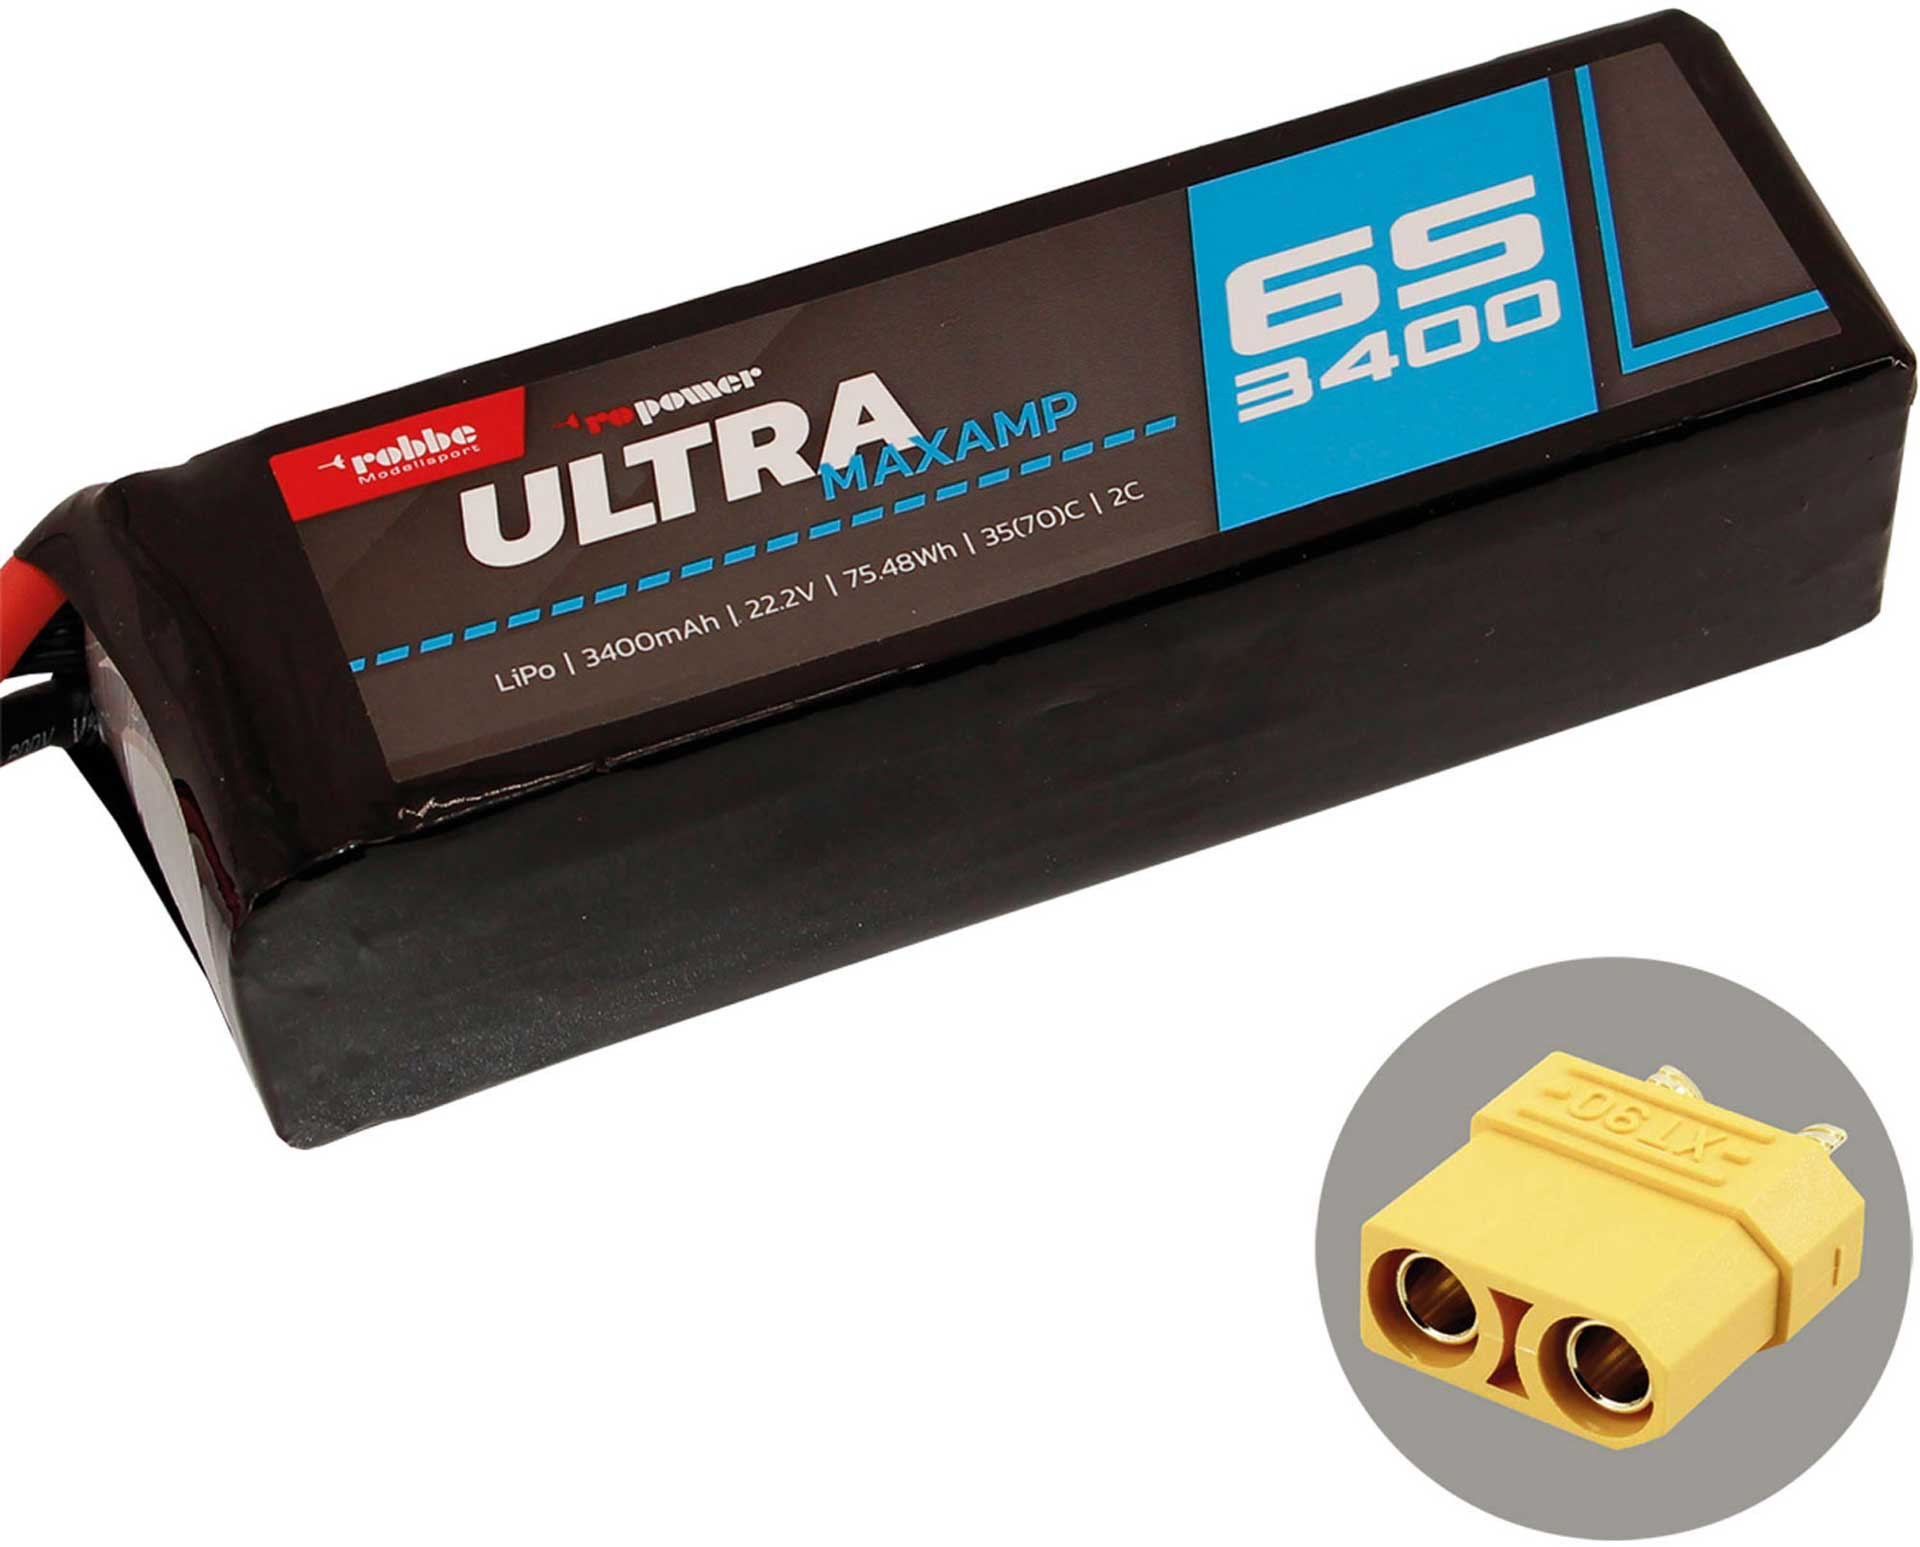 ROBBE RO-POWER ULTRA MAXAMP 3400MAH 22,2 VOLT